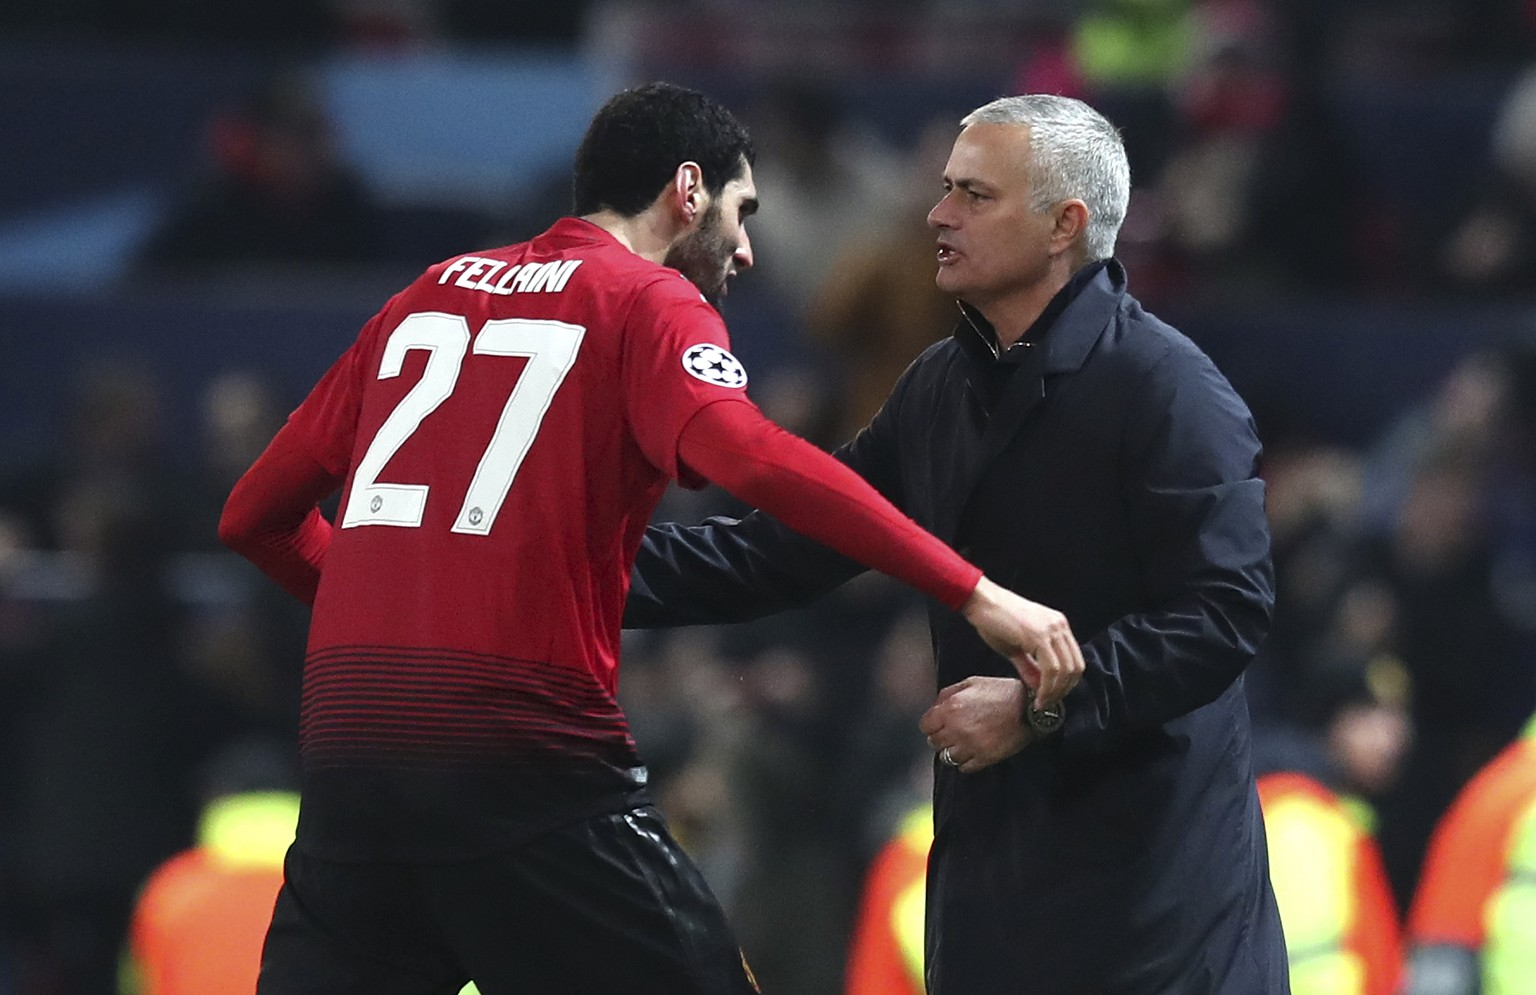 ManU midfielder Marouane Fellaini celebrates with ManU coach Jose Mourinho after scoring the opening goal during the Champions League group H soccer match between Manchester United and Young Boys at Old Trafford Stadium in Manchester, England, Tuesday Nov. 27, 2018. (AP Photo/Jon Super)